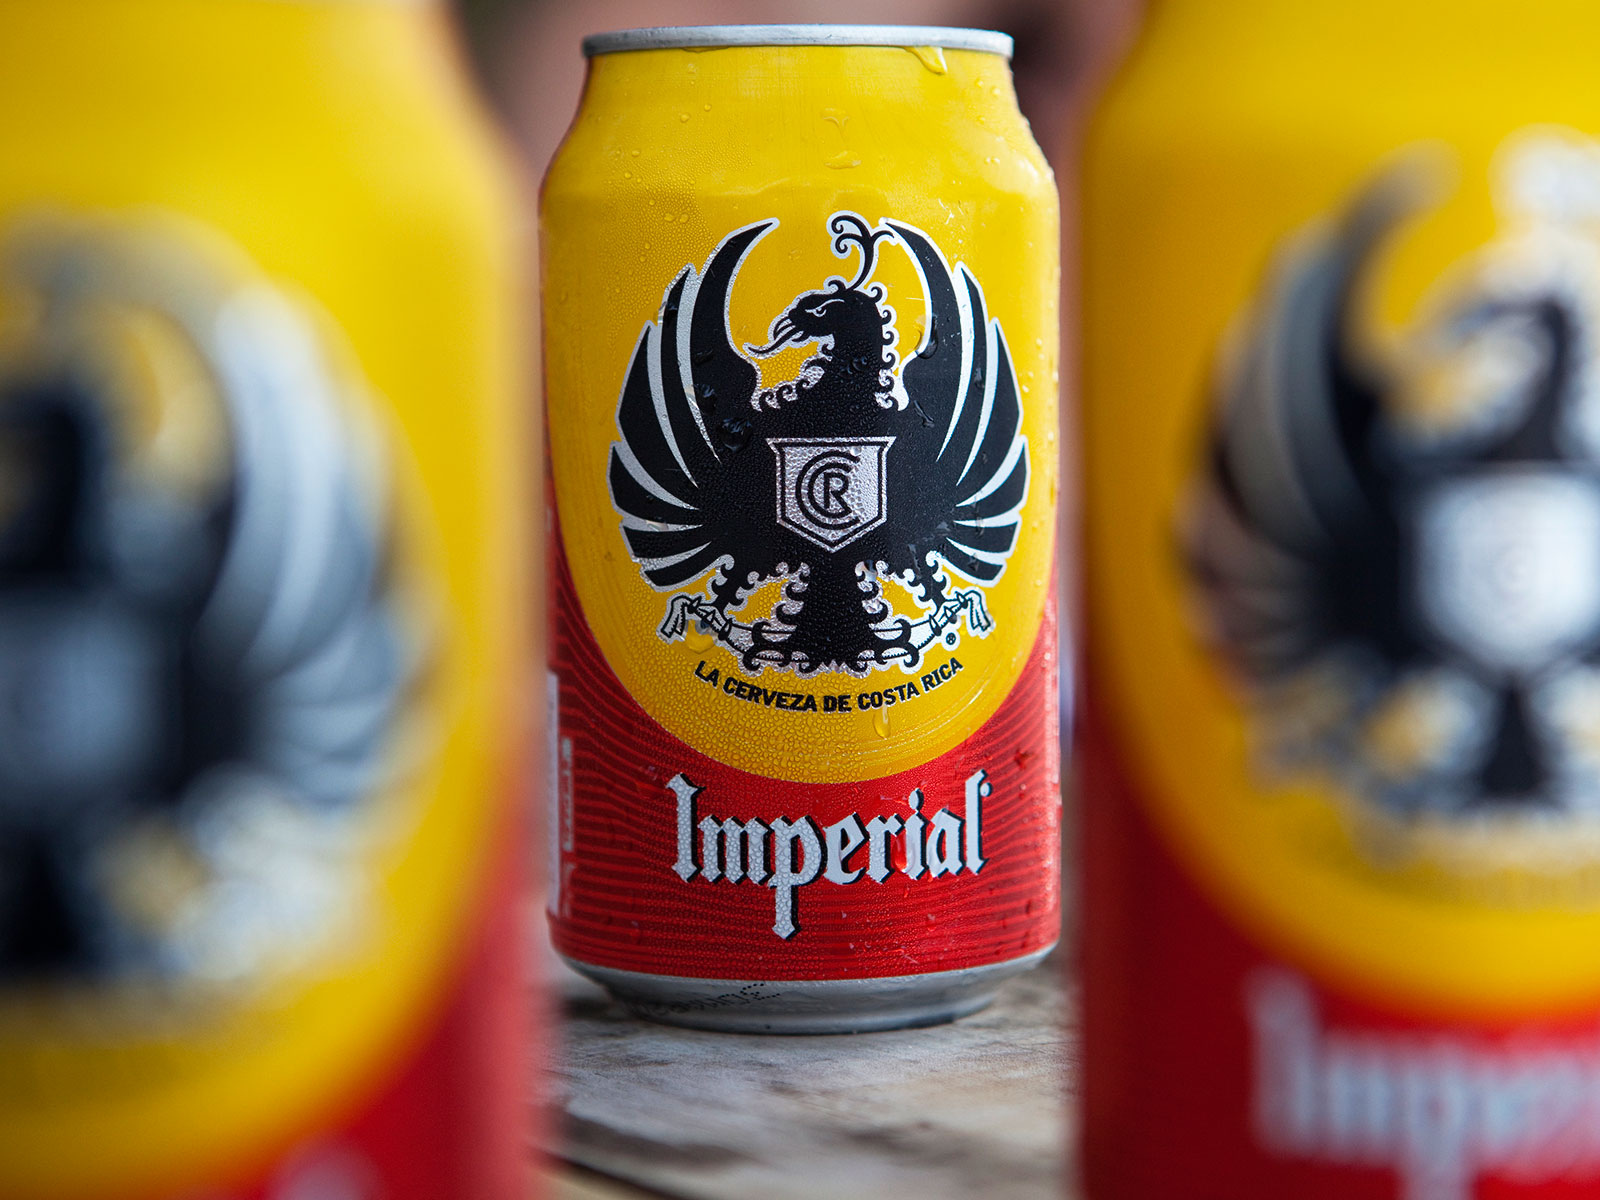 imperial beer costa rican imperial